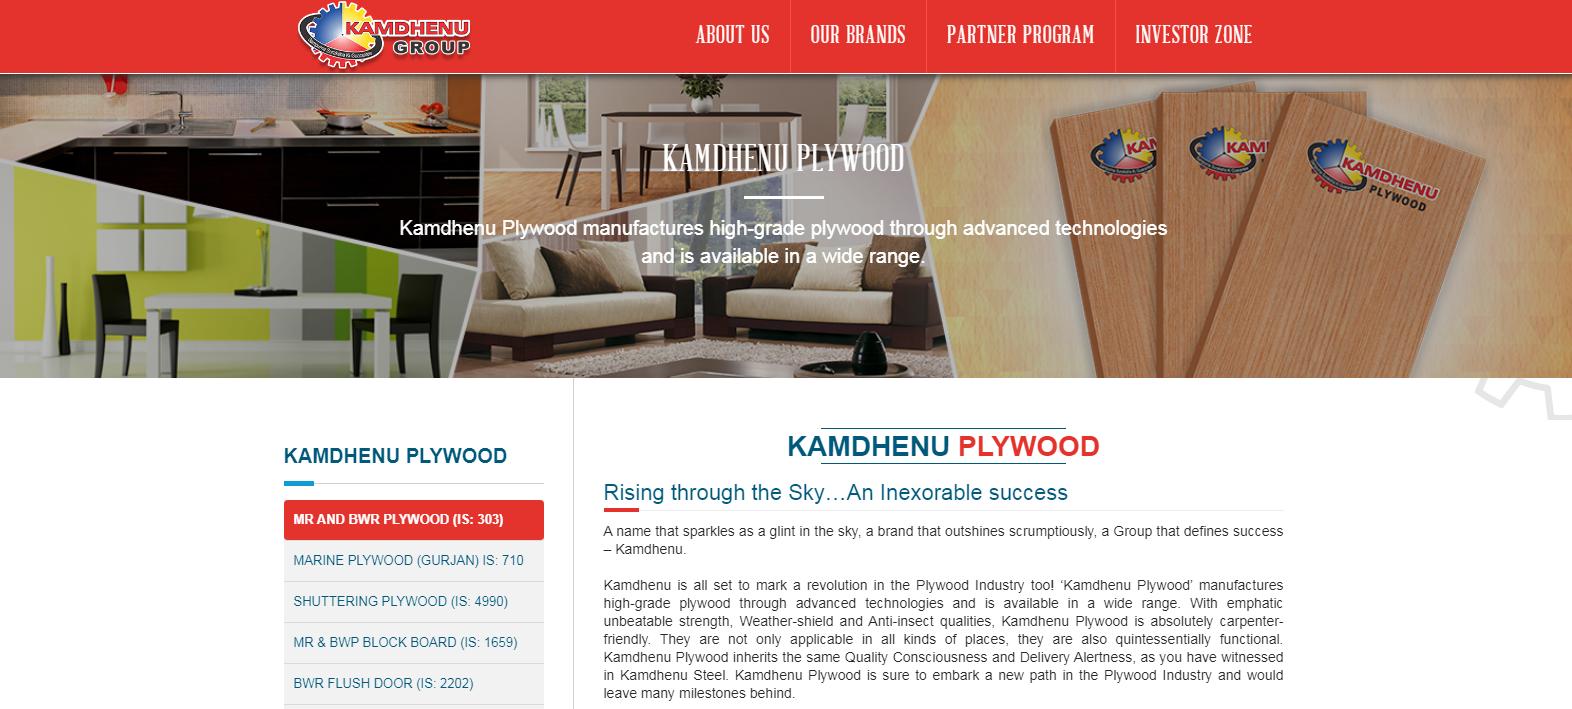 Kamdhenu Plywood Brand Best Plywood Brand Available in India